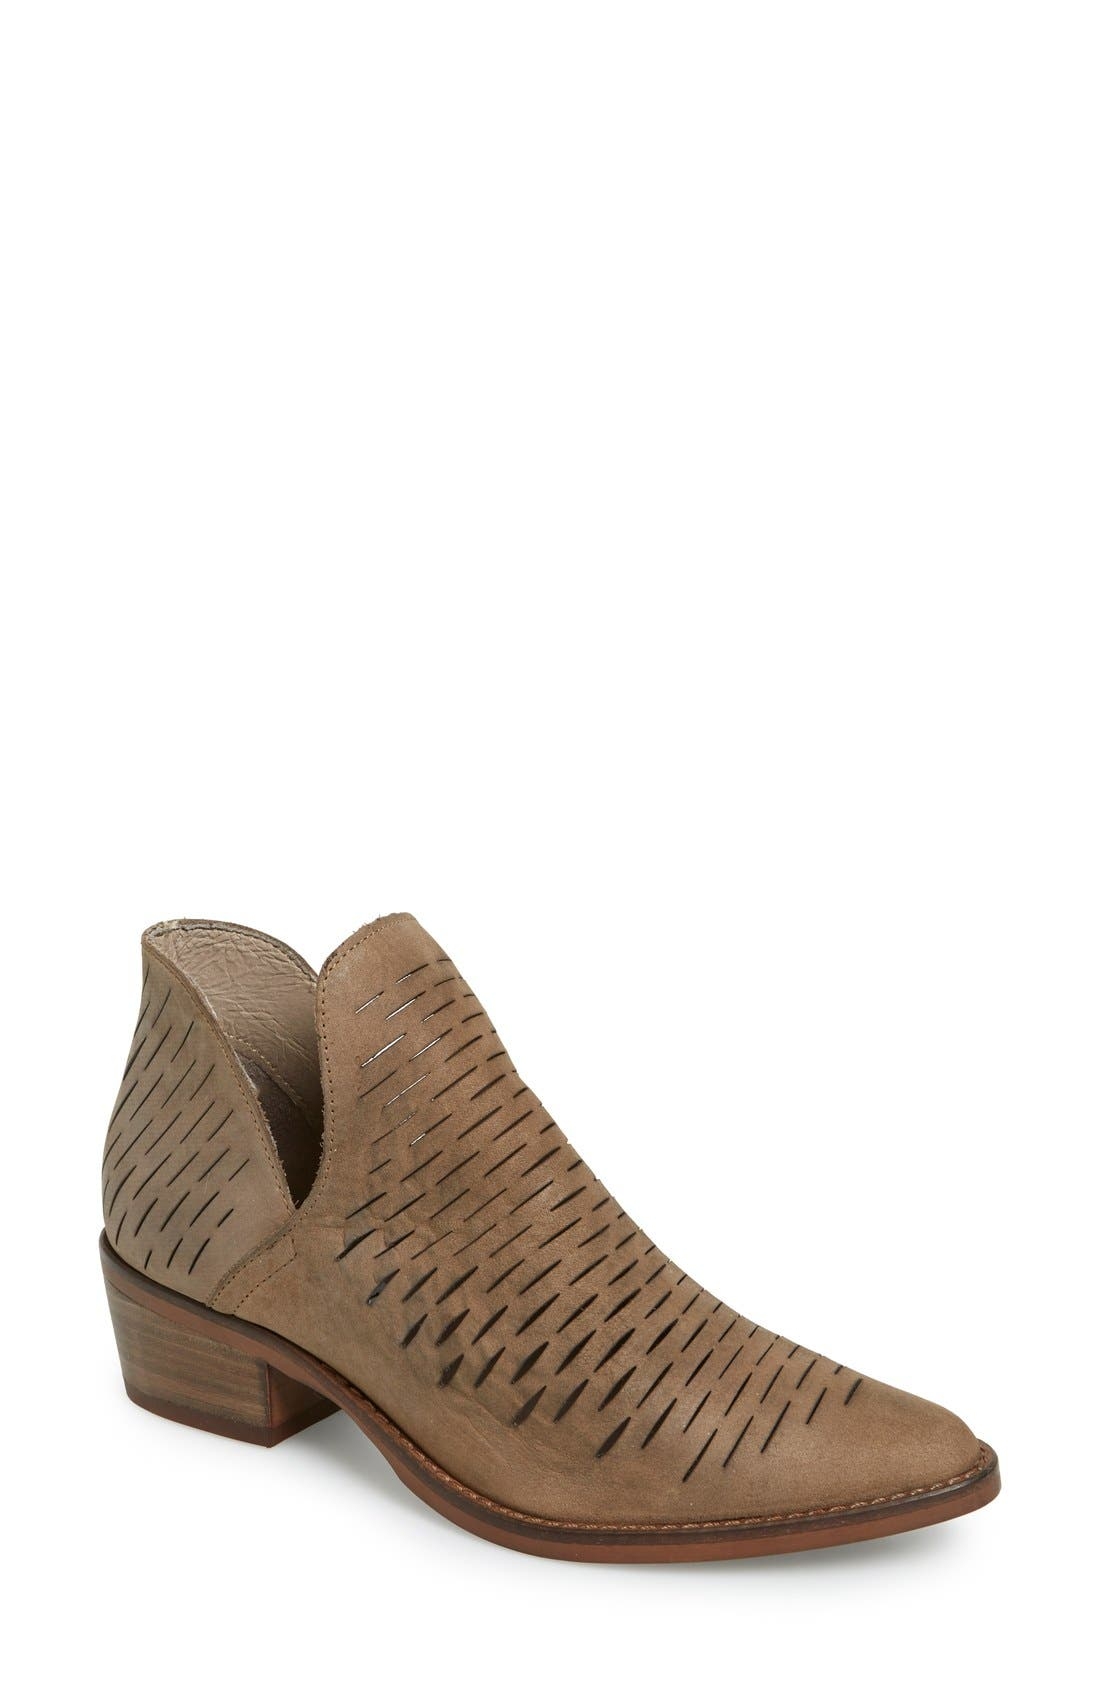 Main Image - Steve Madden 'Arowe' Perforated Bootie (Women)